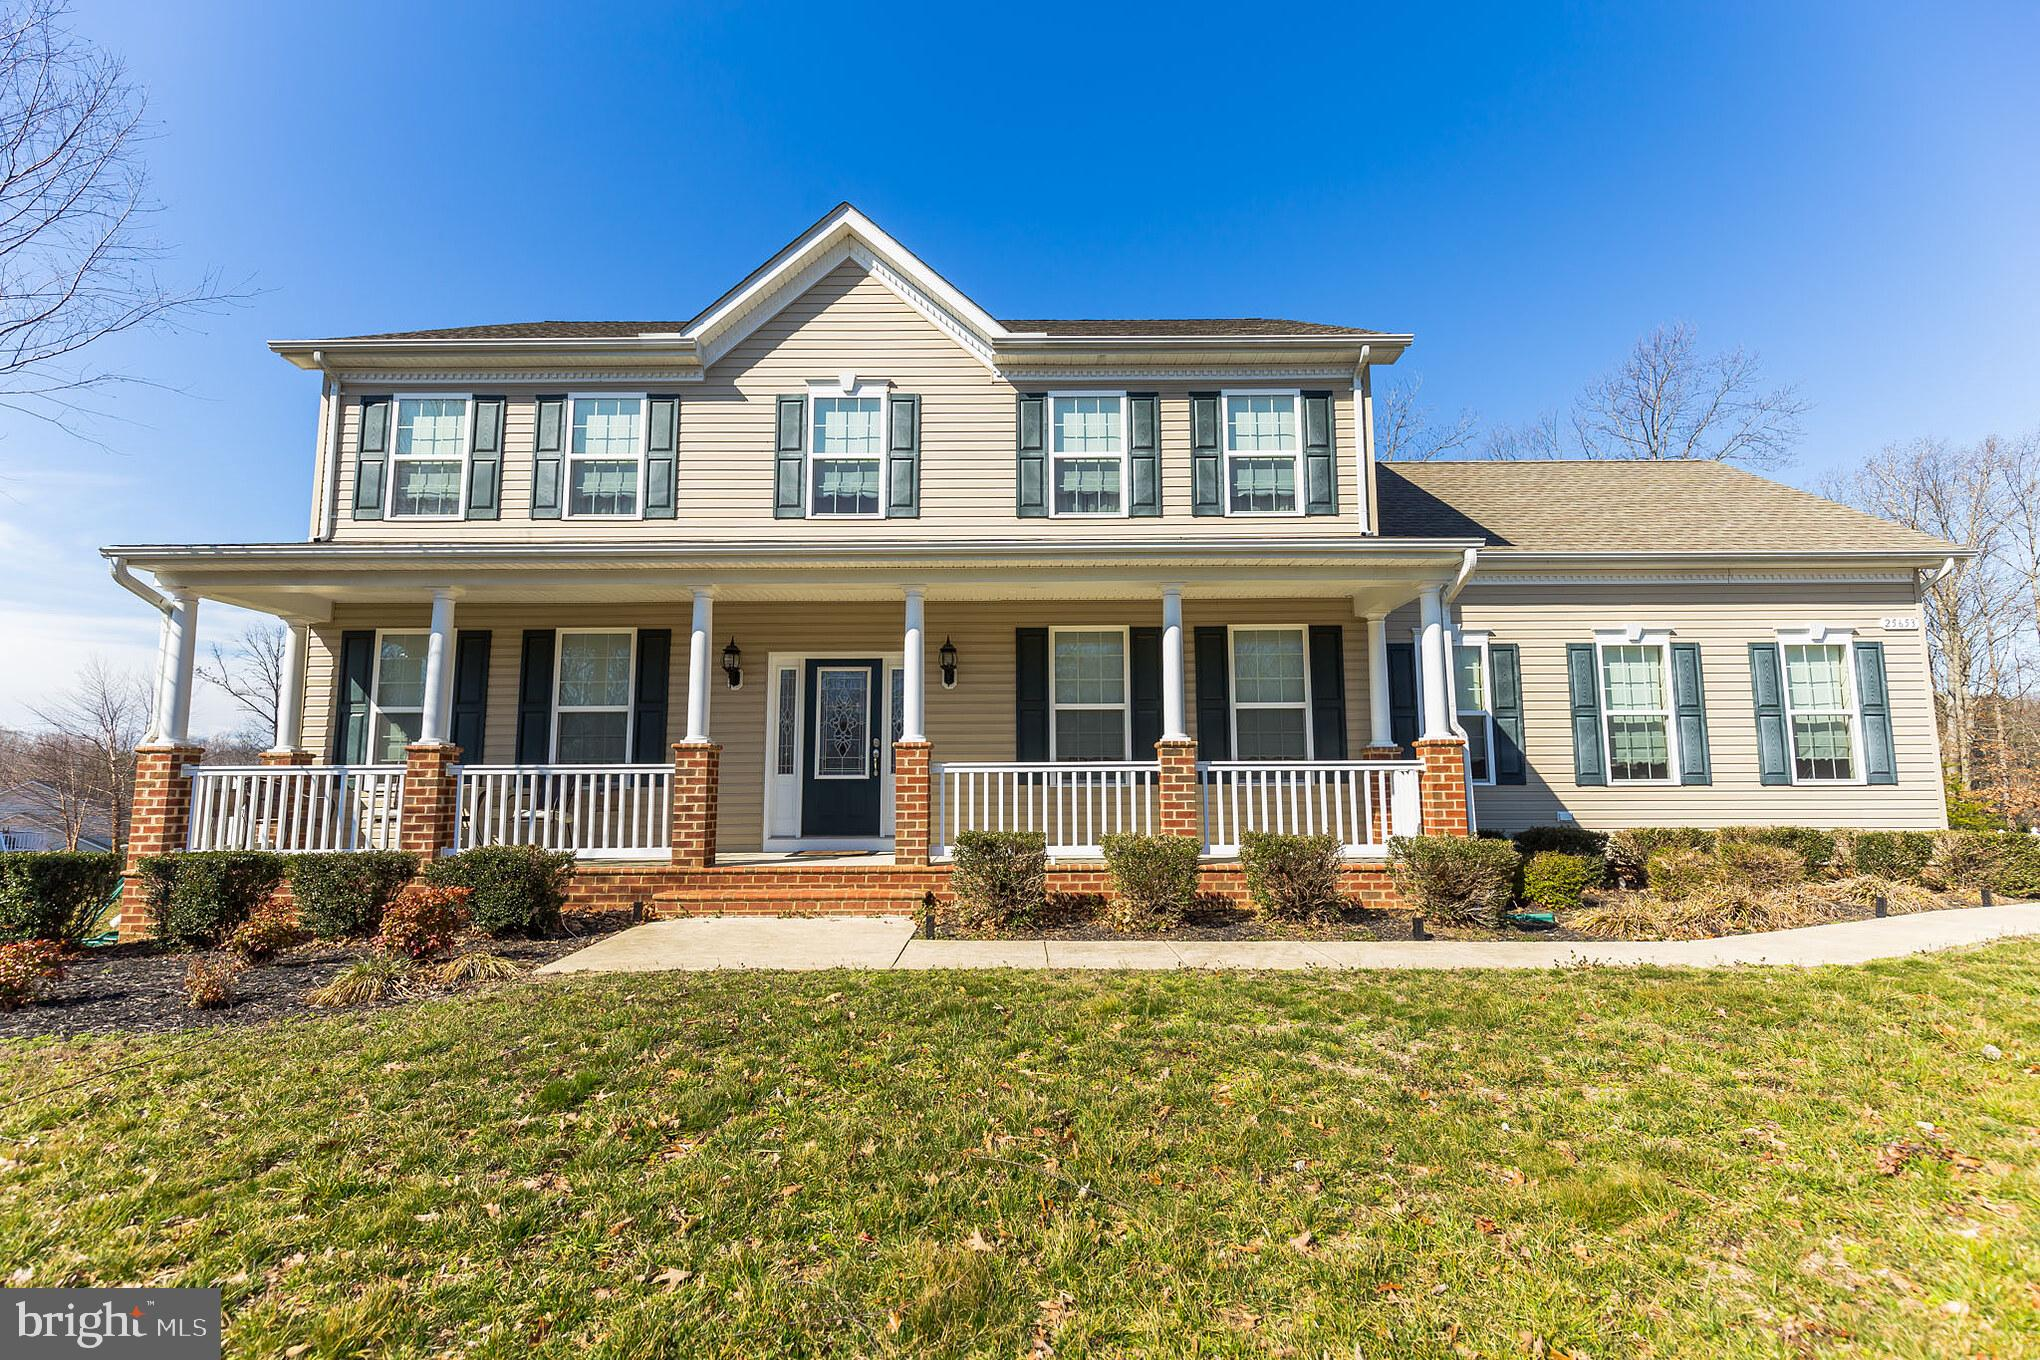 25653 SCENIC VIEW STREET, MECHANICSVILLE, MD 20659